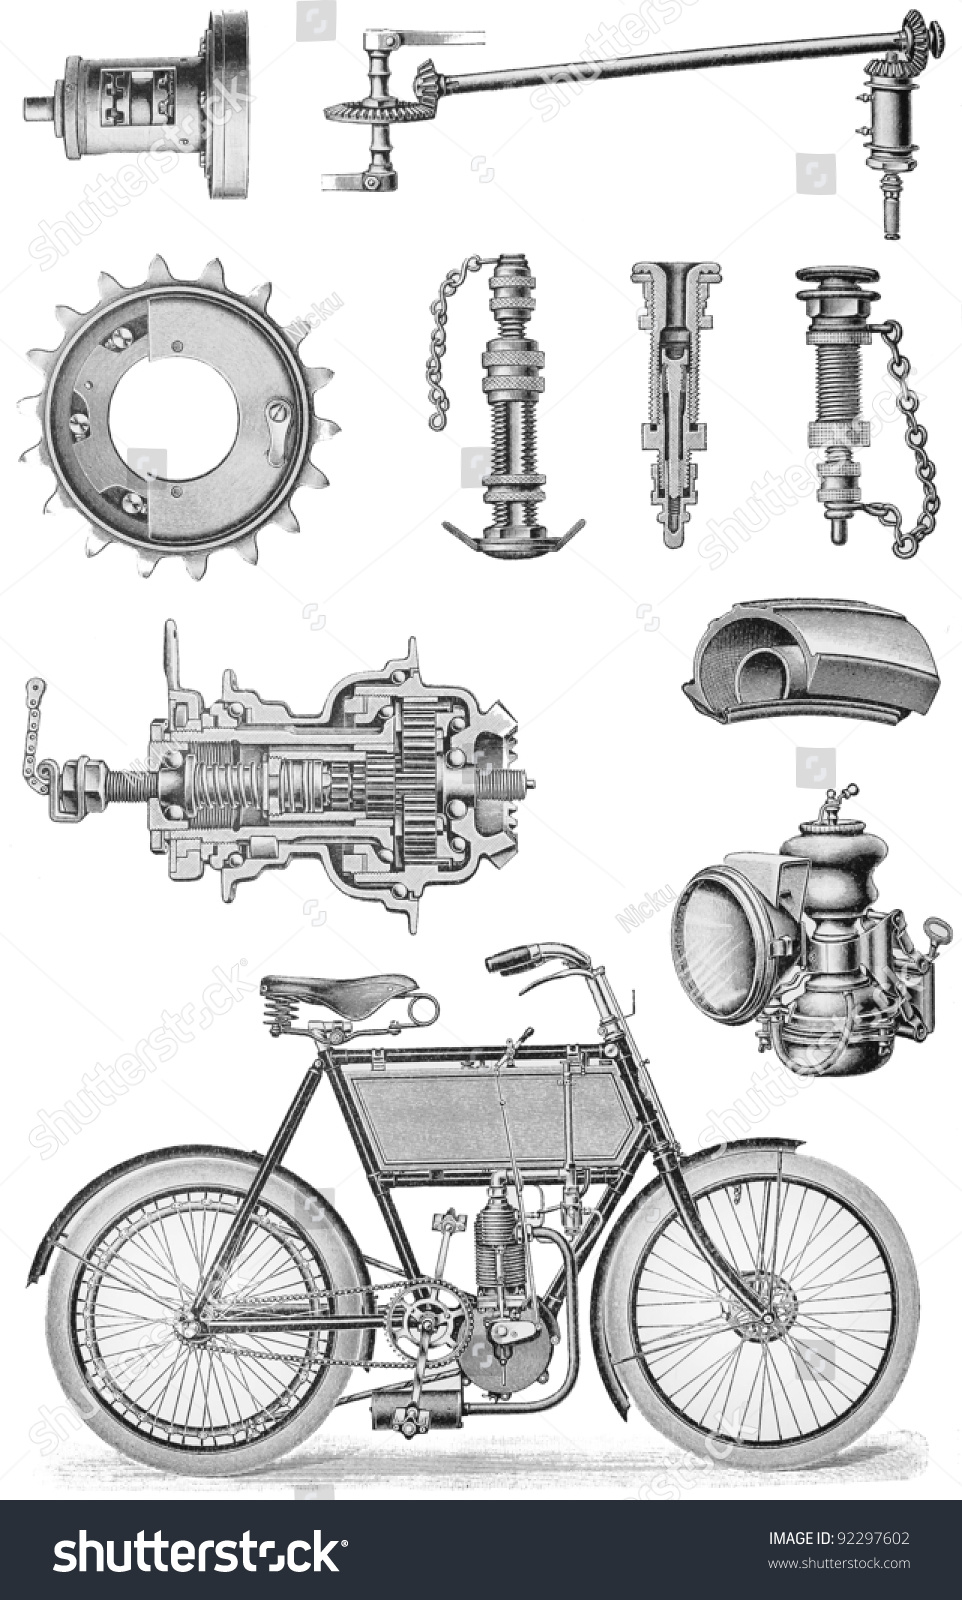 Motorcycle Diagram Drawing Circuit Connection Of Engine 1340 Evo Free Image For User Harley Motors Diagrams